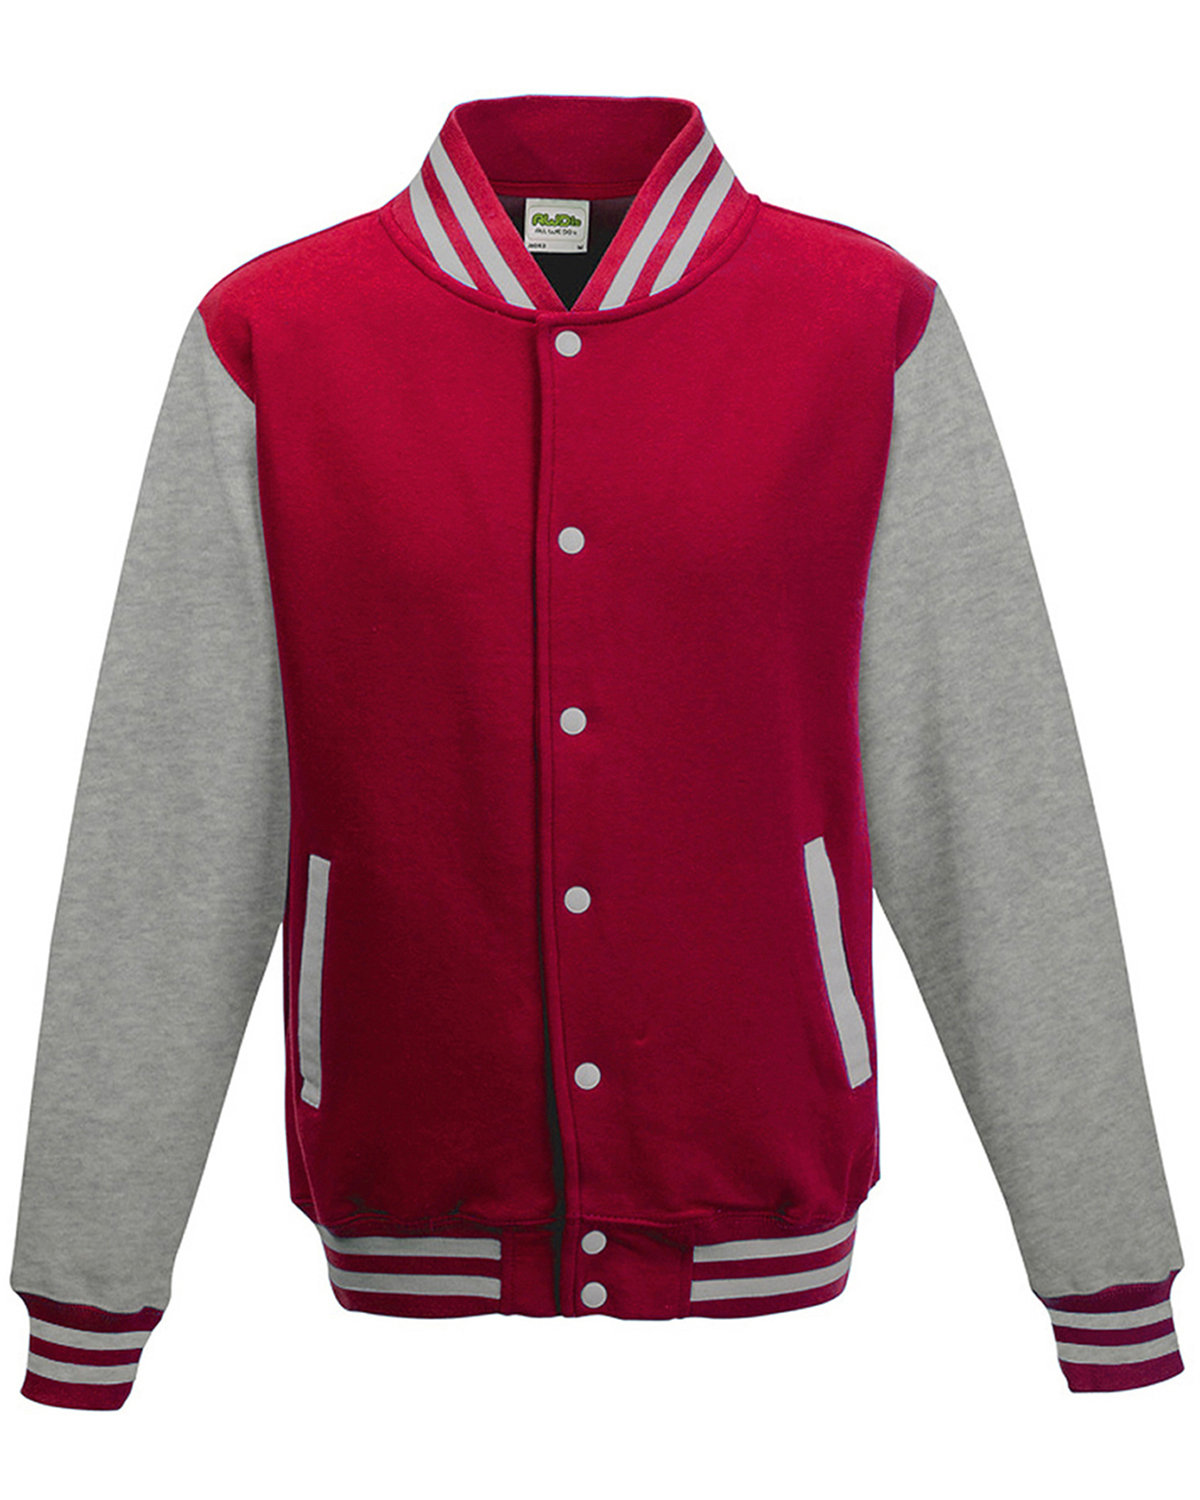 Just Hoods By AWDis Men's 80/20 Heavyweight Letterman Jacket FIRE RD/ HTH GRY